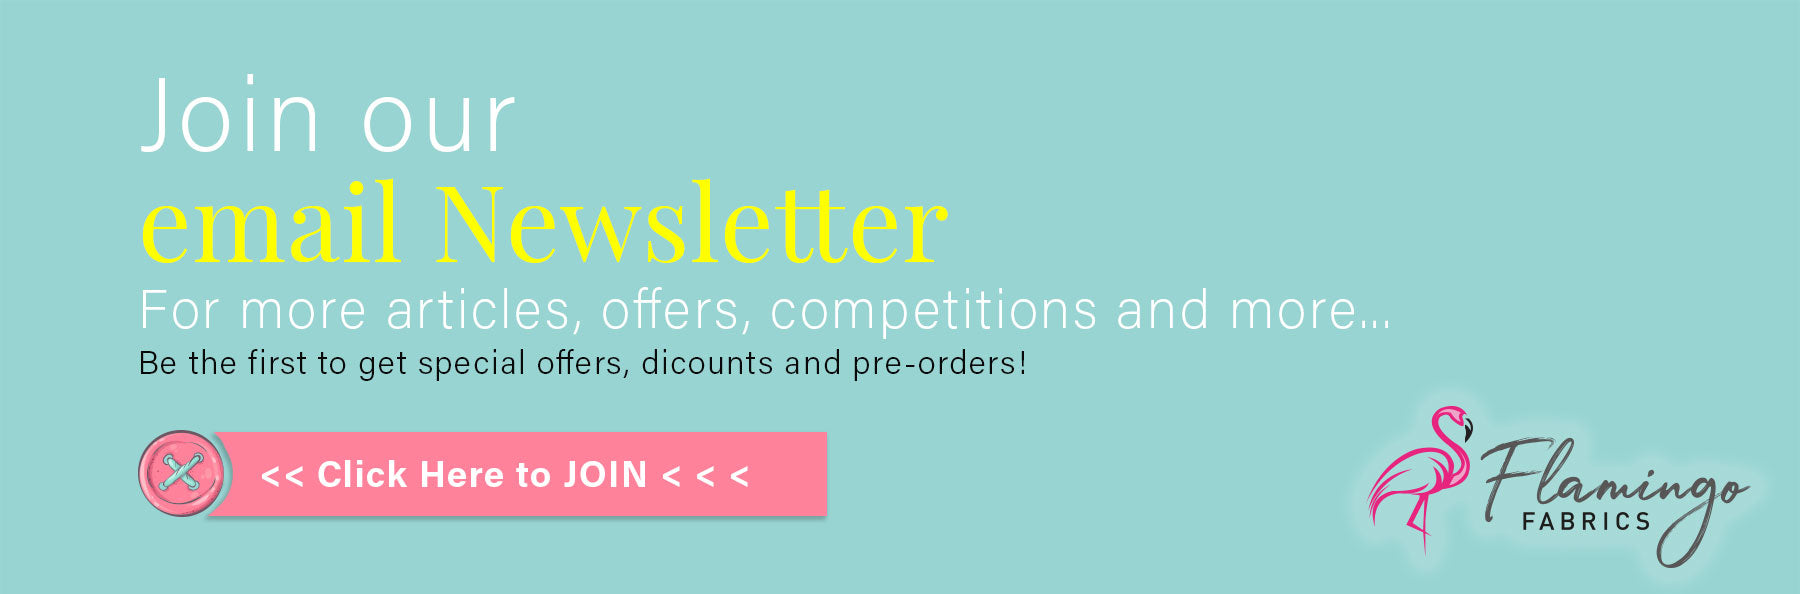 Join our fabulous Newsletter